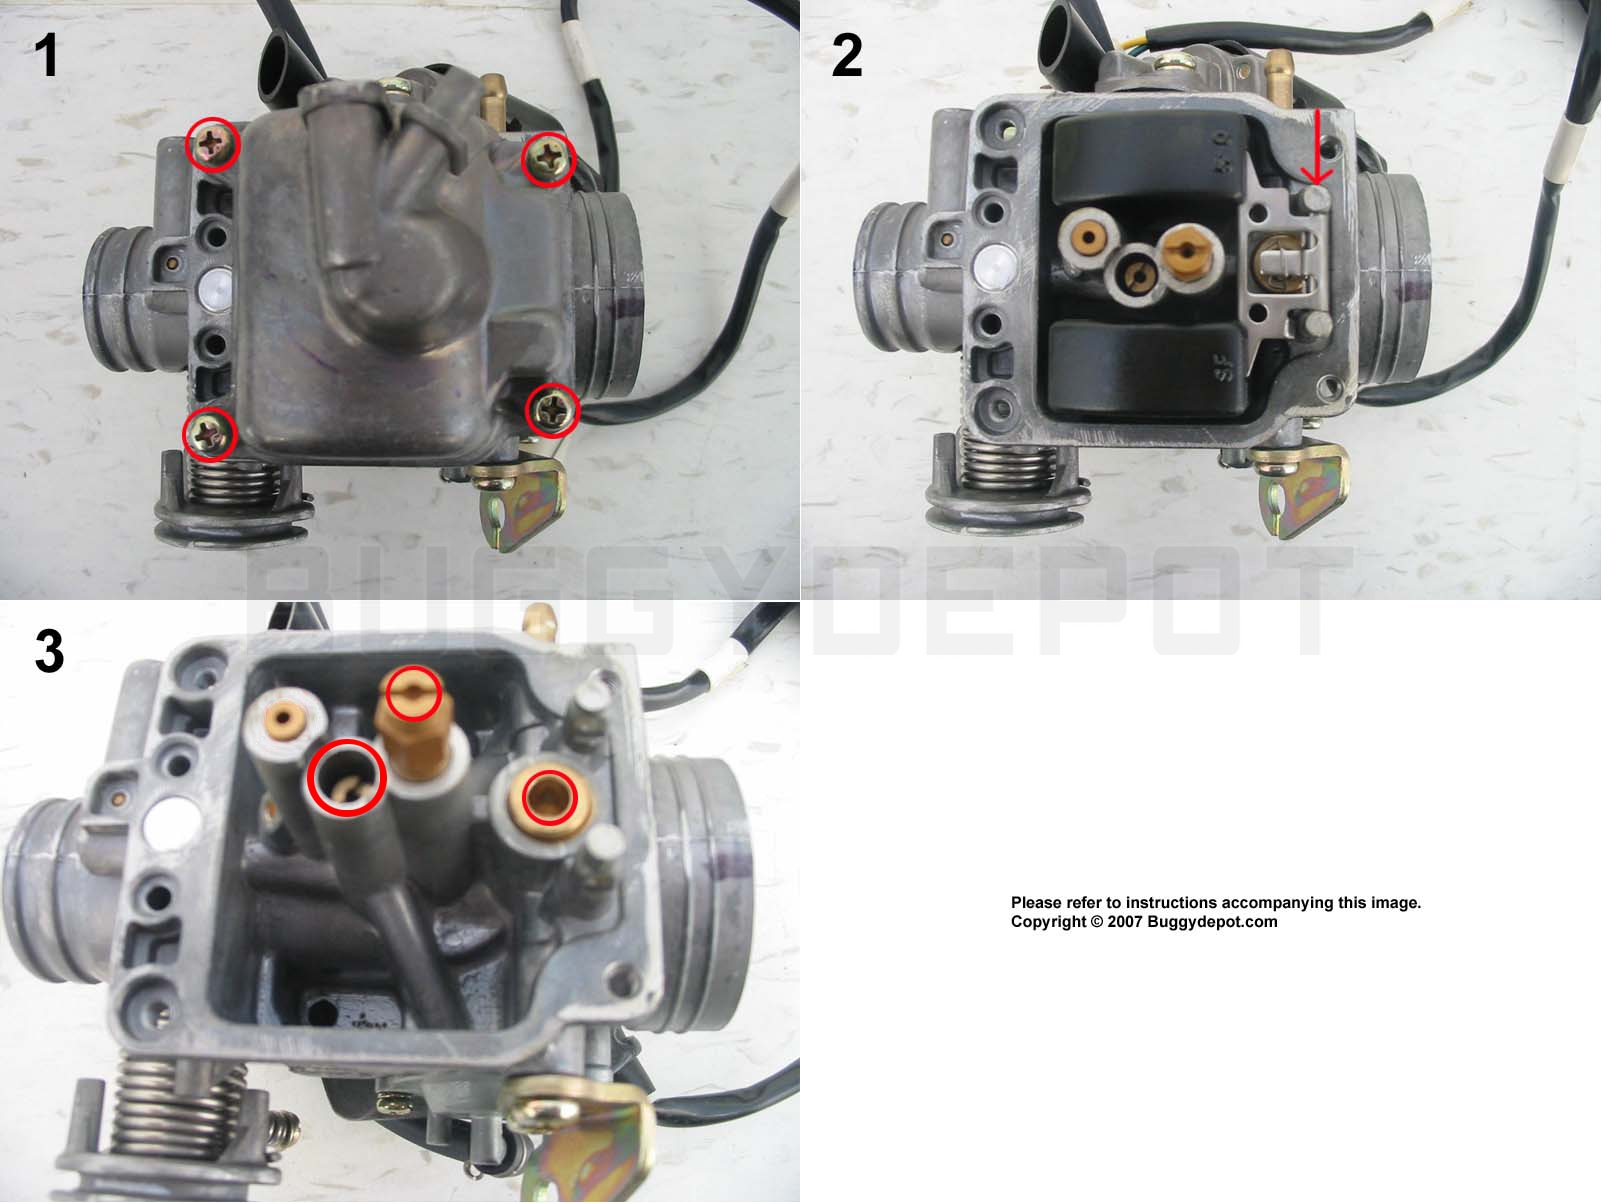 150cc gy6 scooter wiring diagram what is a tree in math carburetor cleaning guide - buggy depot technical center